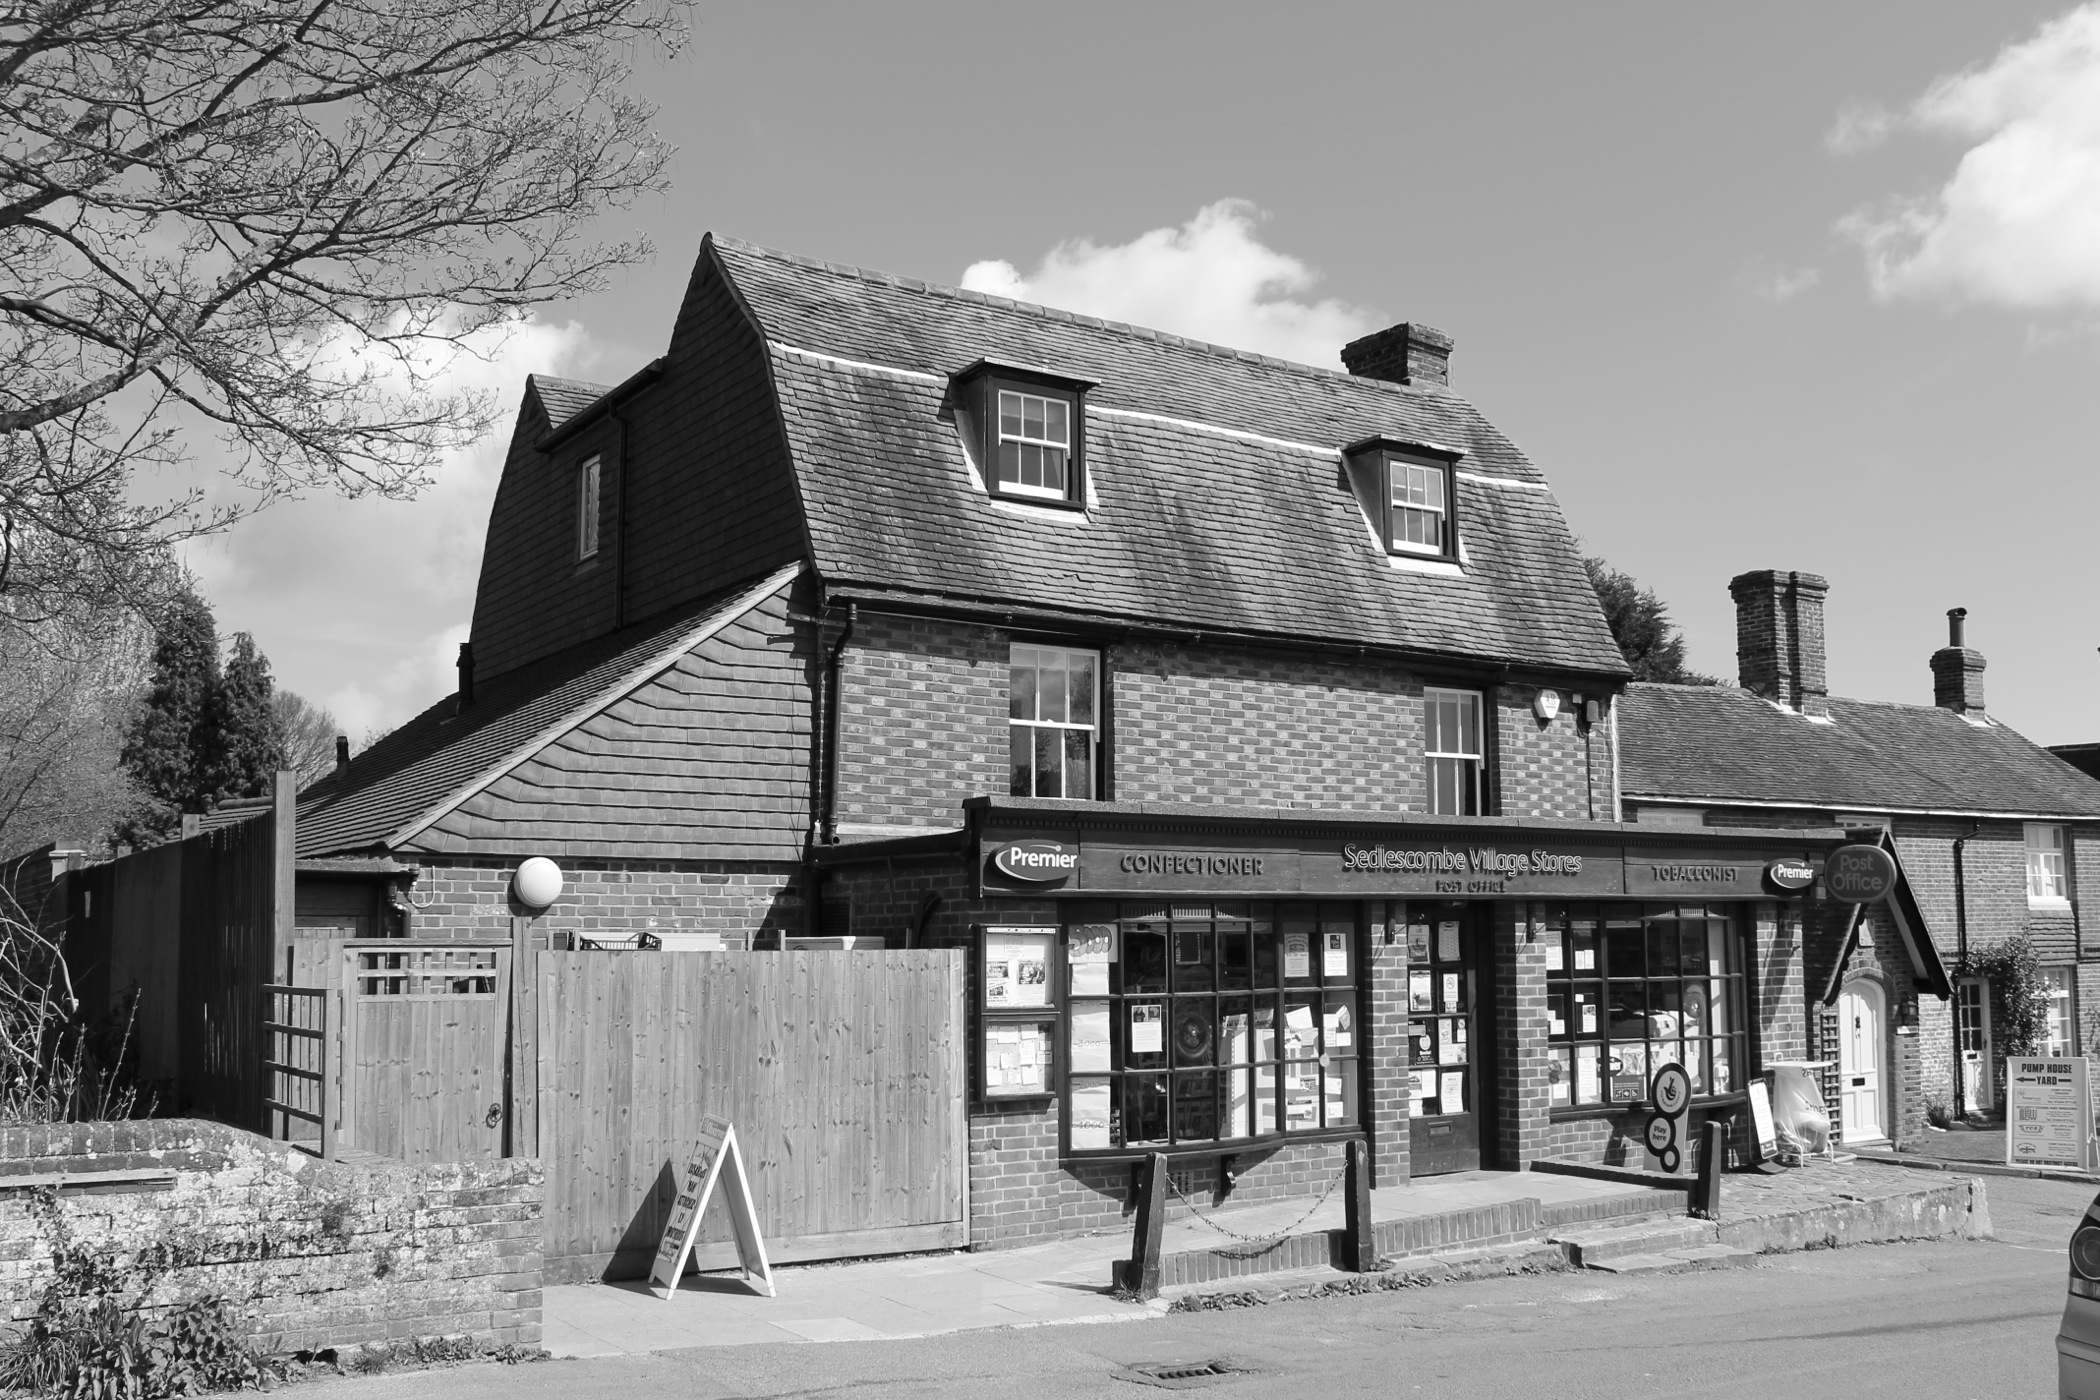 grade II post office extension with rear house extension